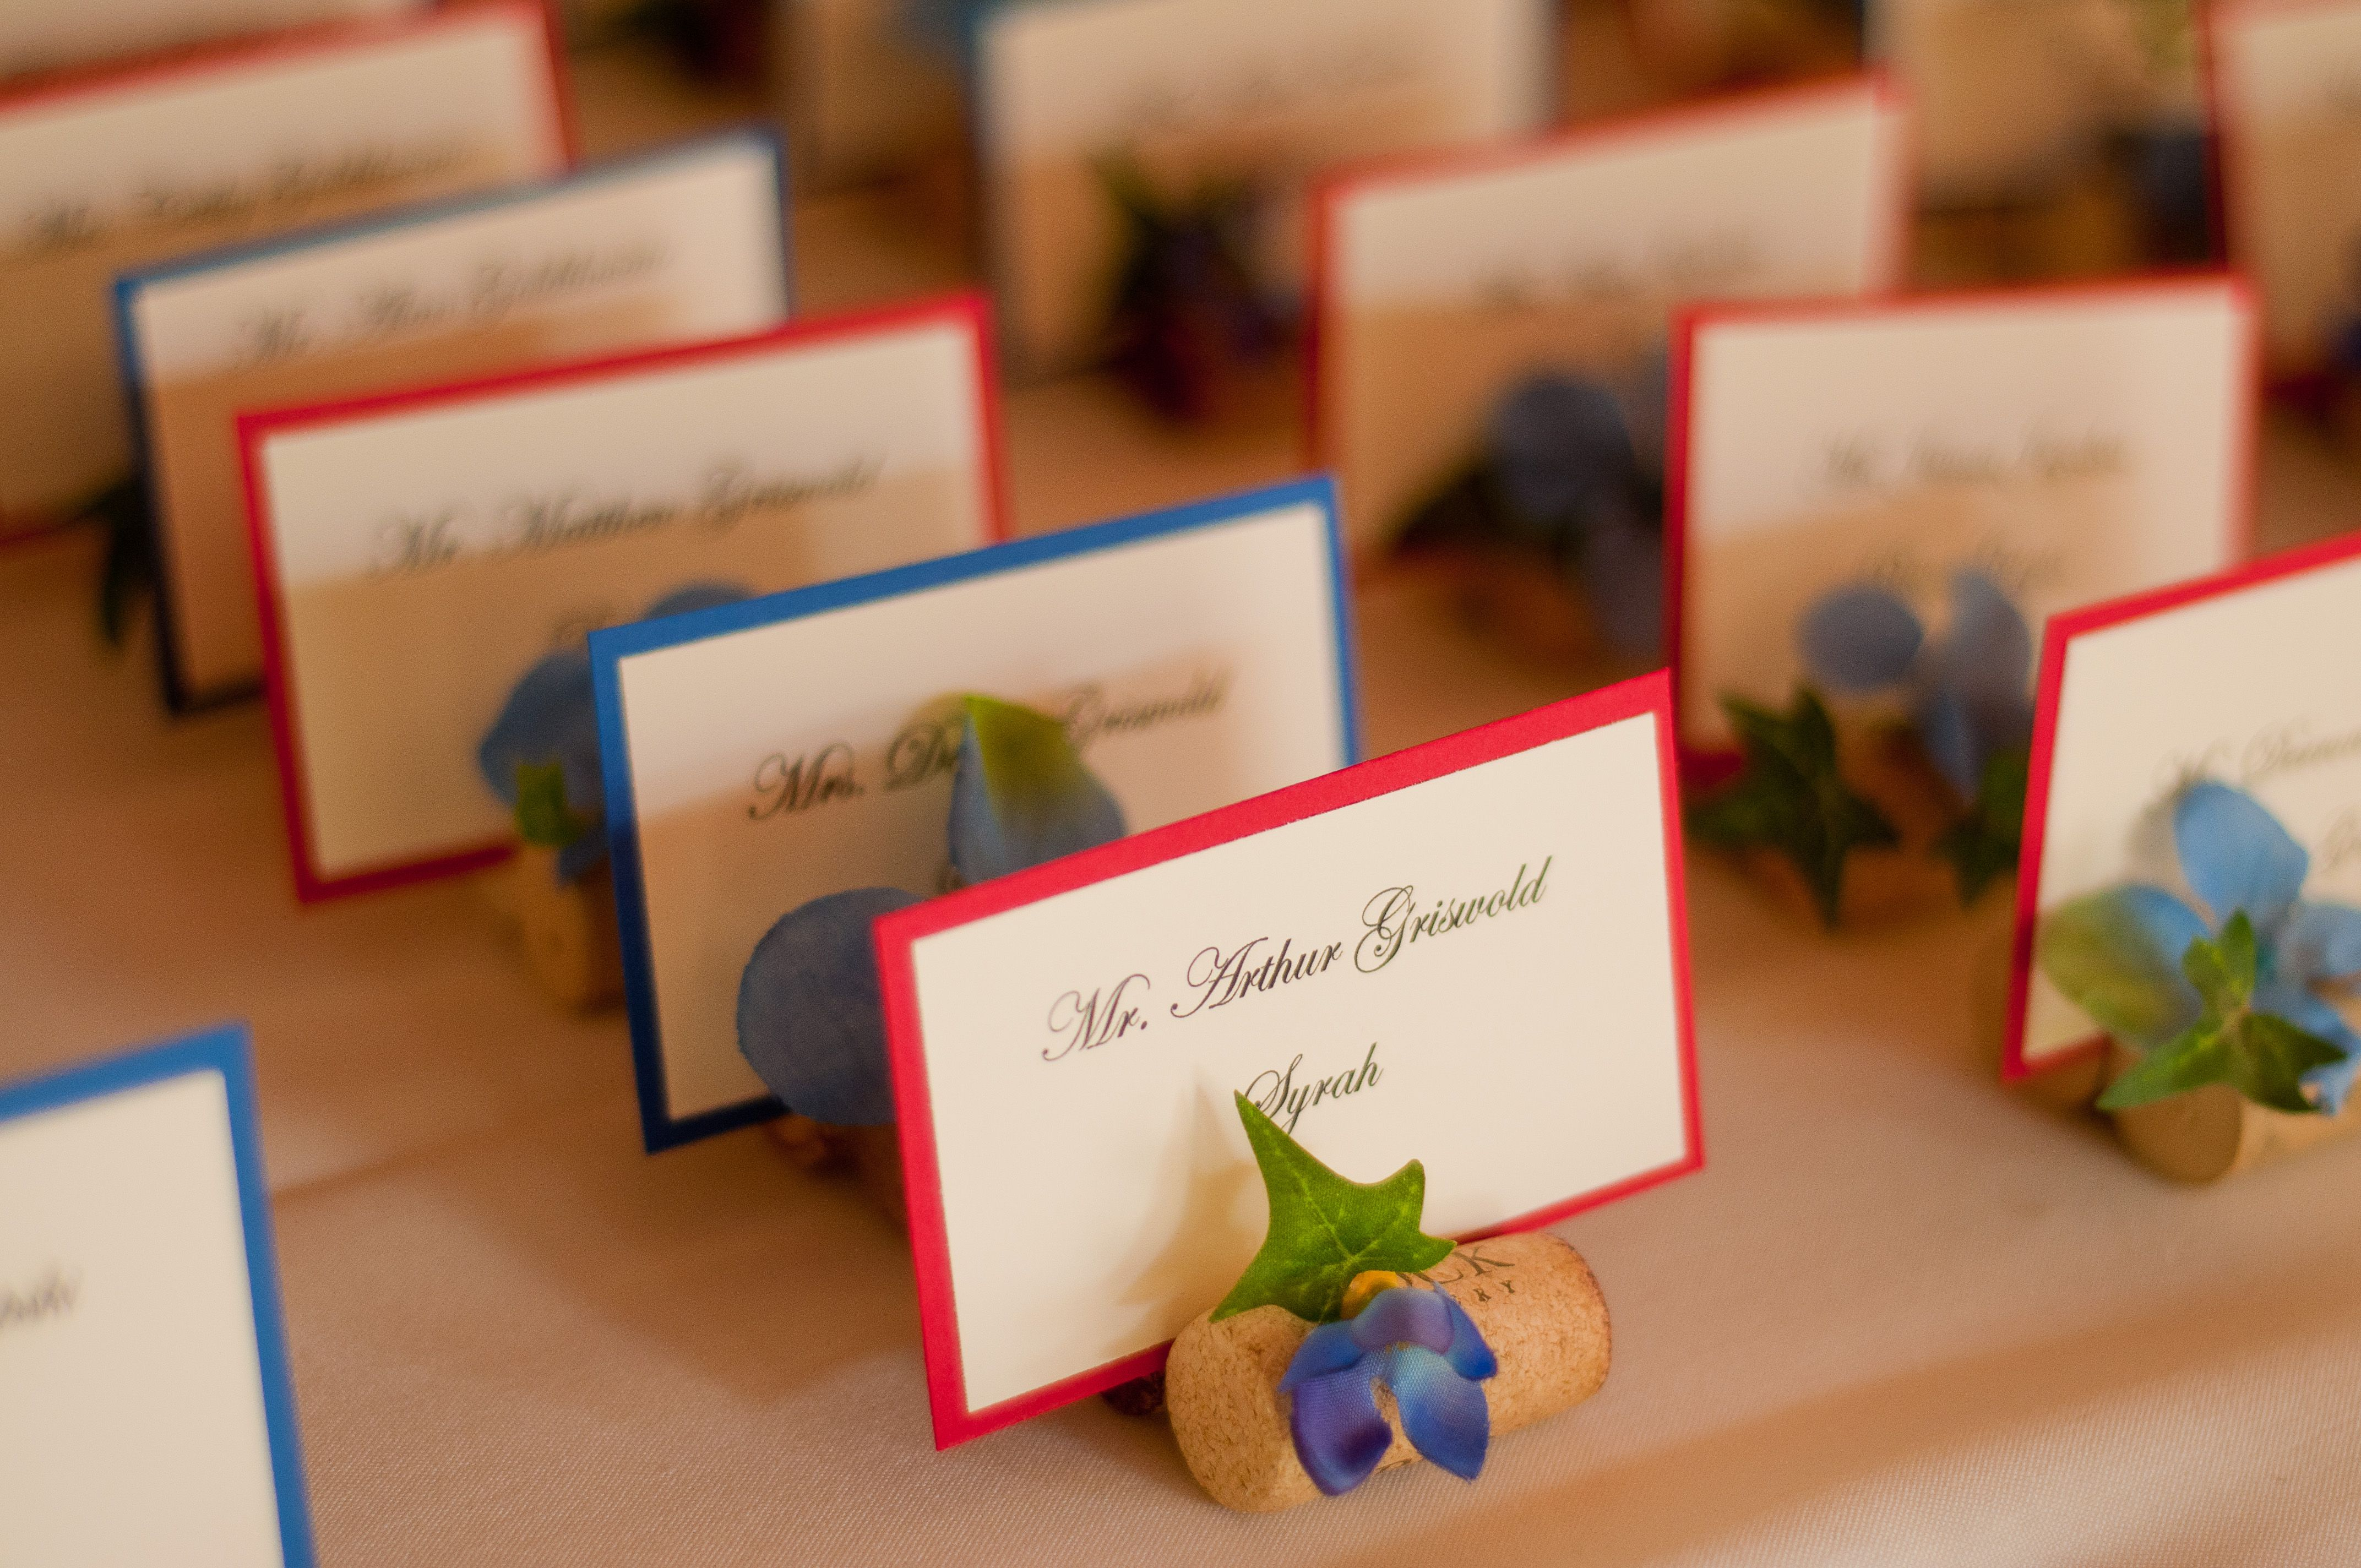 We made these place cards by gluing two corks together, adding fake flowers, and printing off the names from ivory business card paper and pasting it to colored card stock